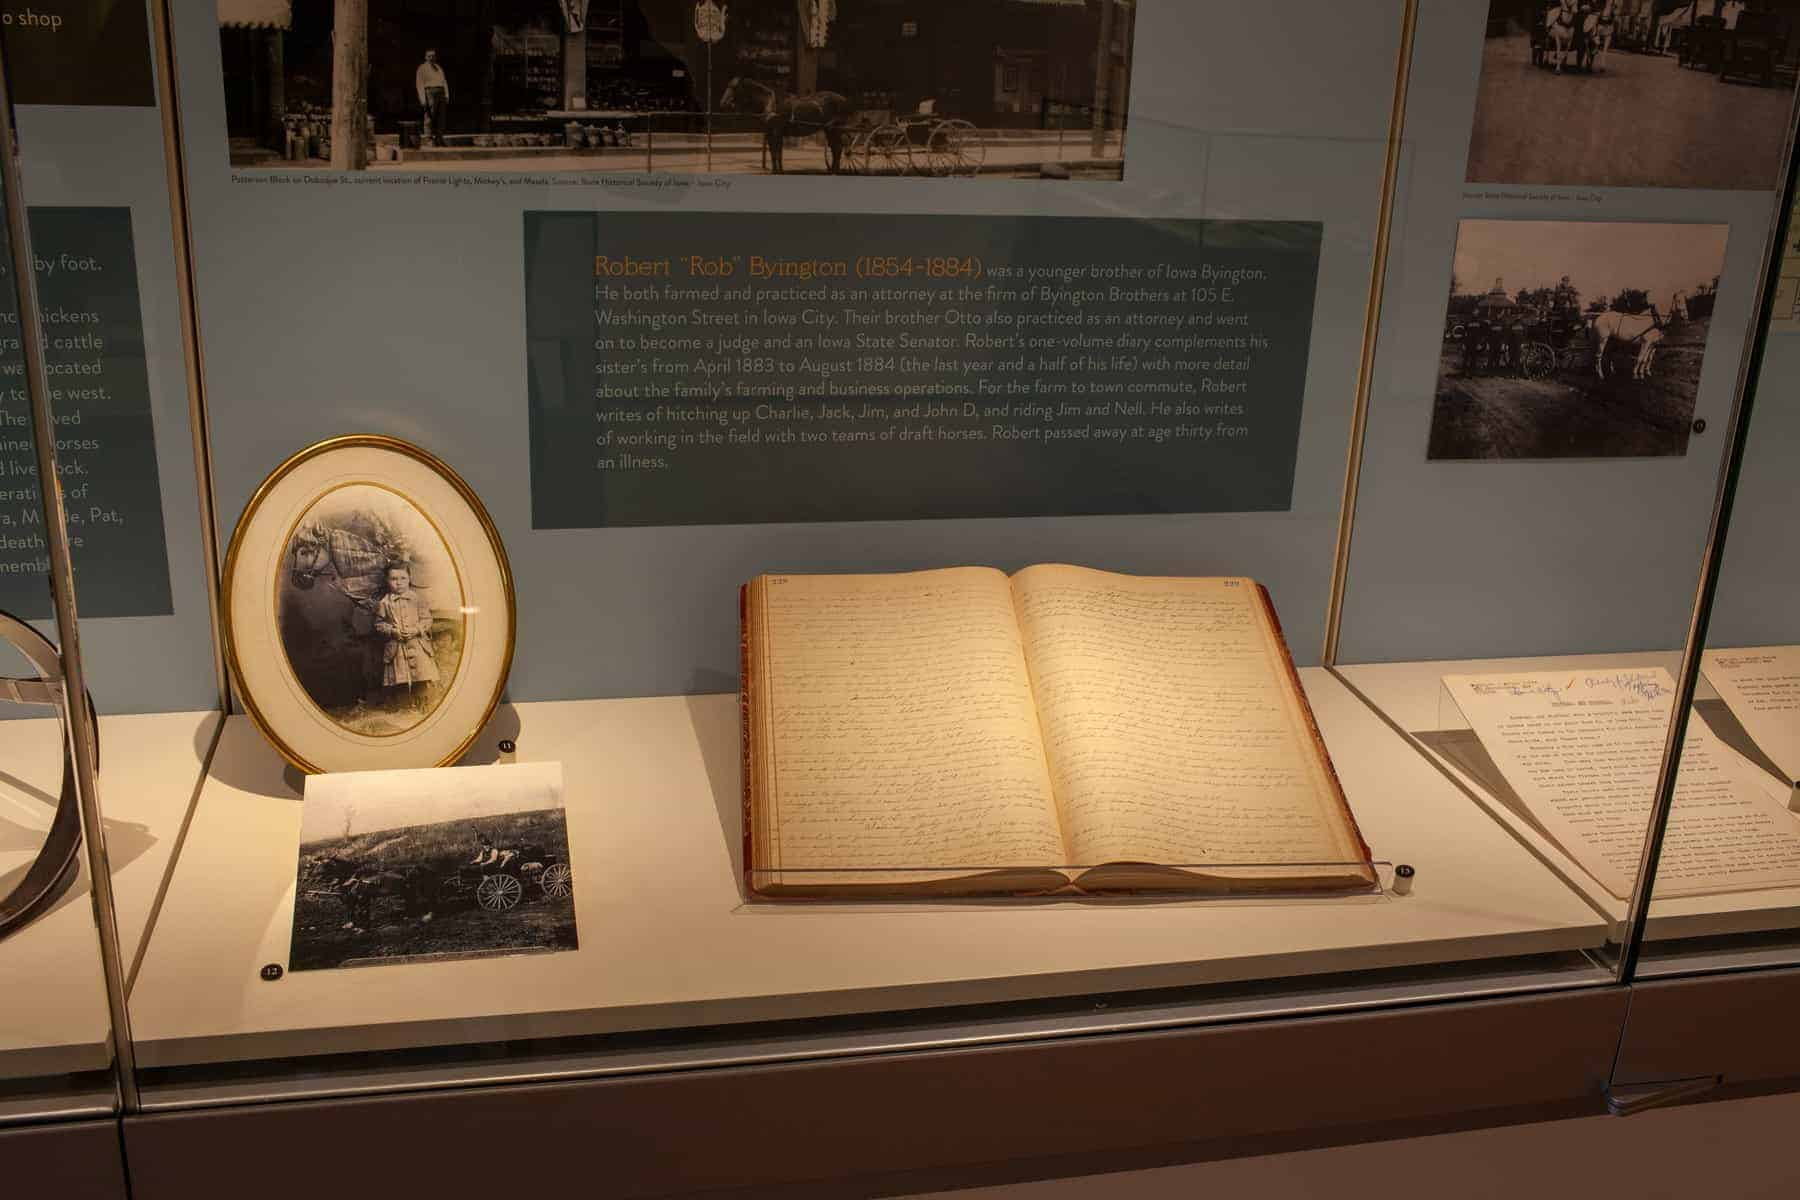 In the case is a 19th century handwritten diary by Robert Byington. The case also includes a photo of a travelling salesman with horse and buggy, and a photo of a young boy with a toy horse.